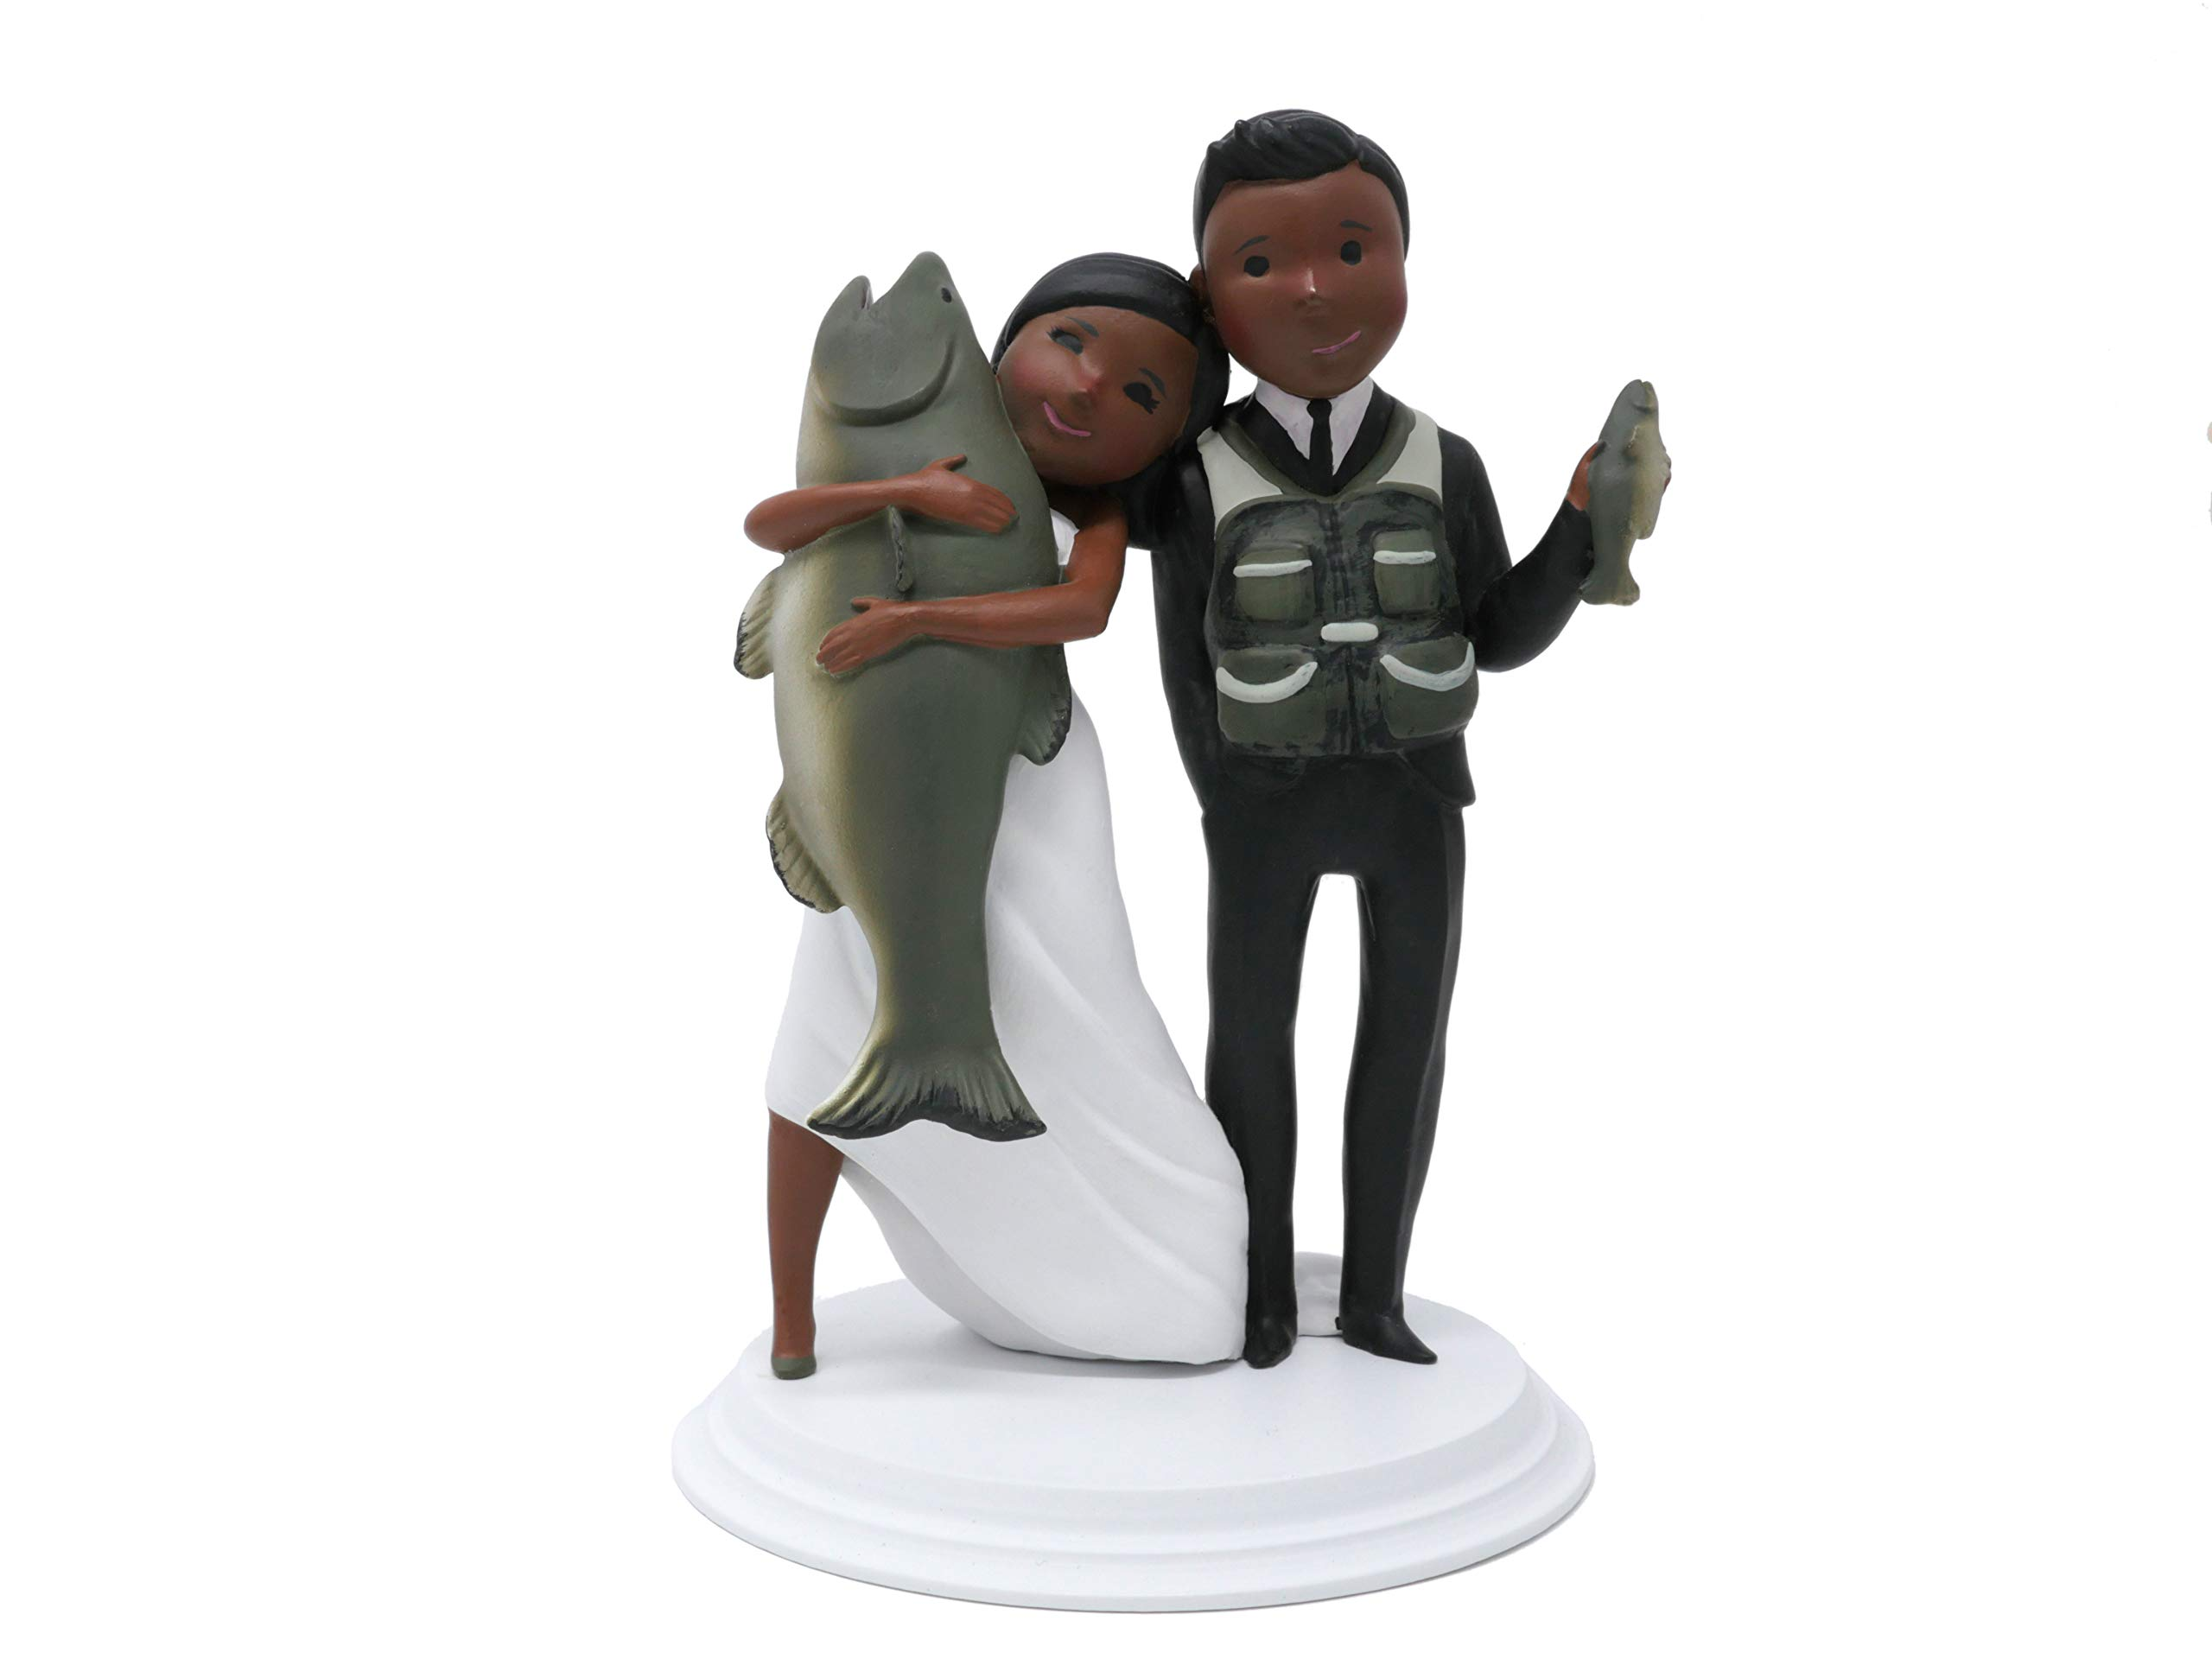 Wedding Cake Toppers - Unique and Funny Fishing Wedding Cake Toppers Bride and Groom (Dark Skin - Black Hair)